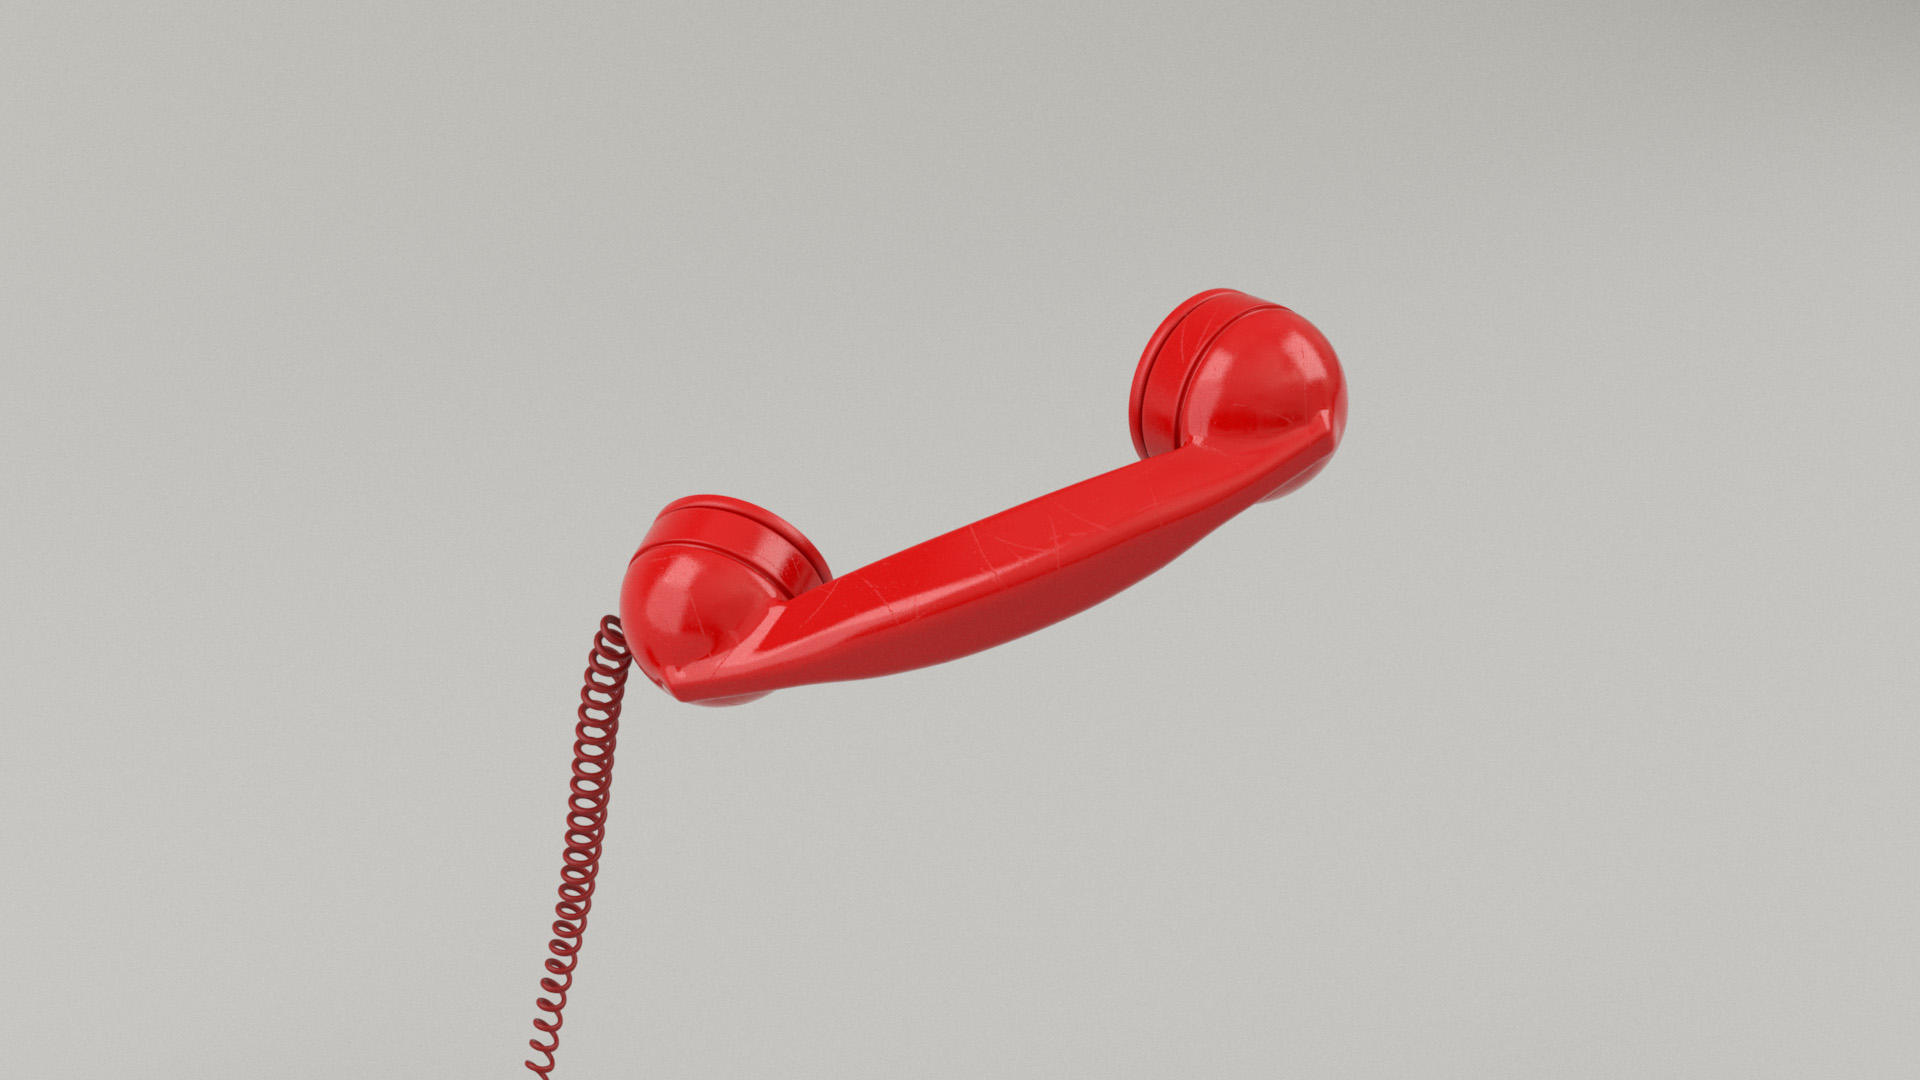 Figure 29: Phone handset, made from red plastic.